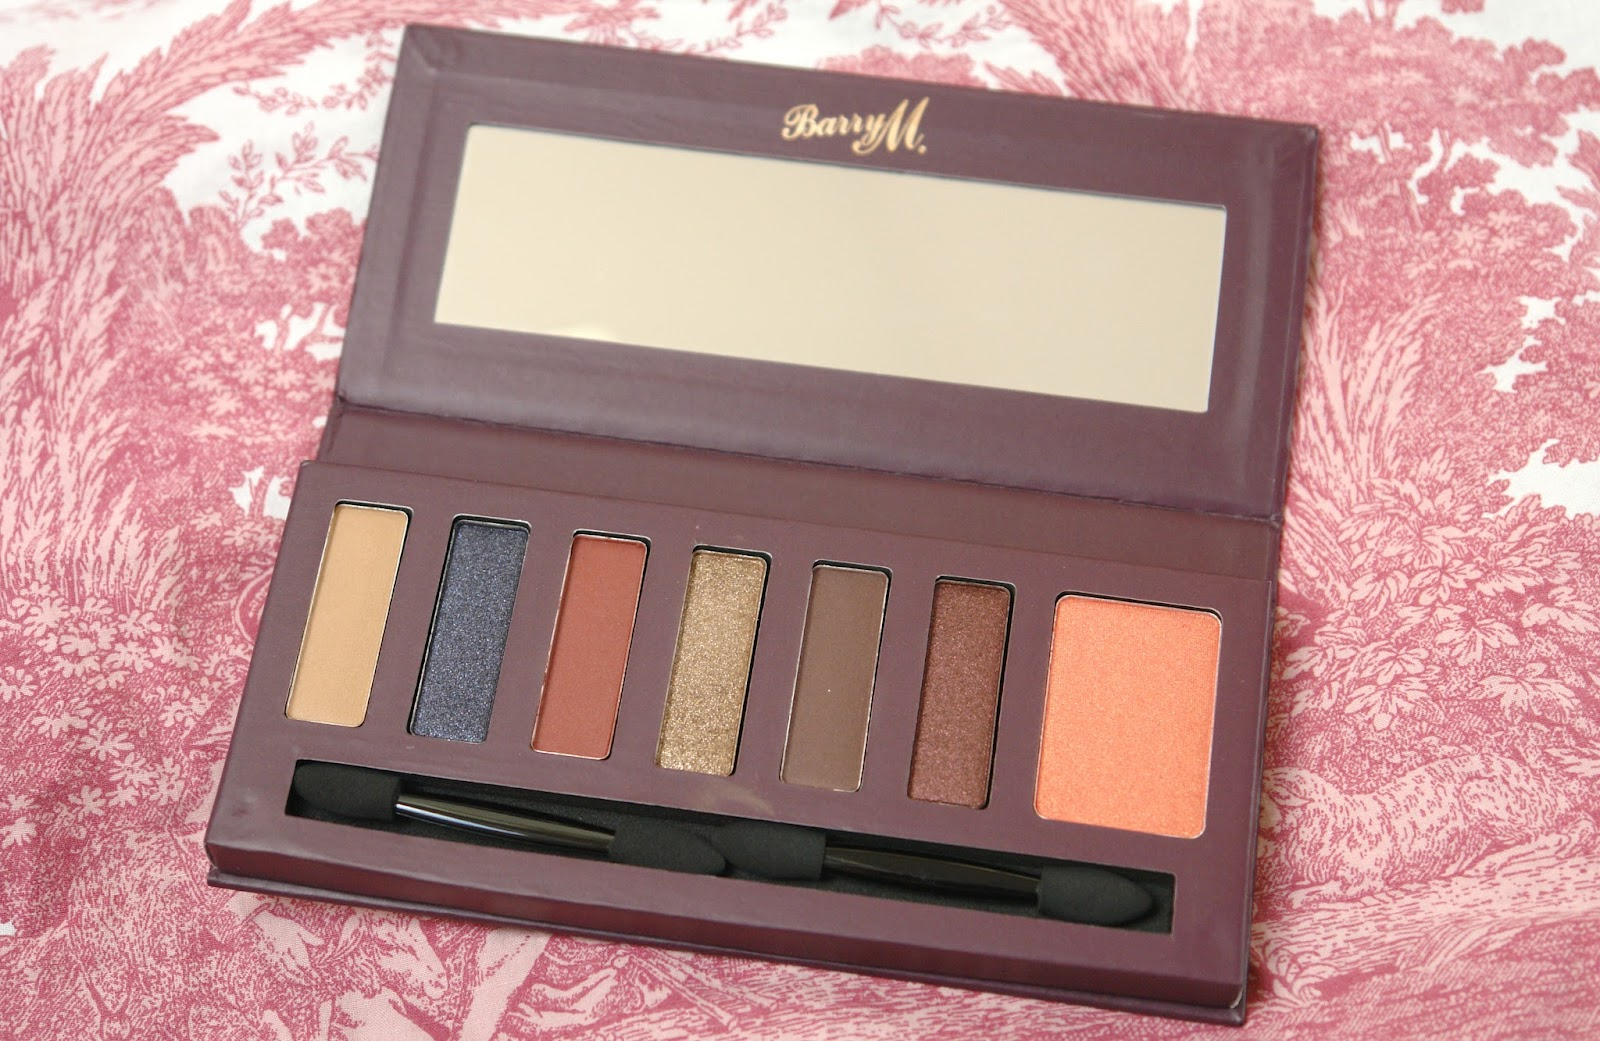 Barry M Starry Eyed Shadow & Blush Palette review, Barry M, beauty, eye shadows, make up, palette, review, swatches, blogger